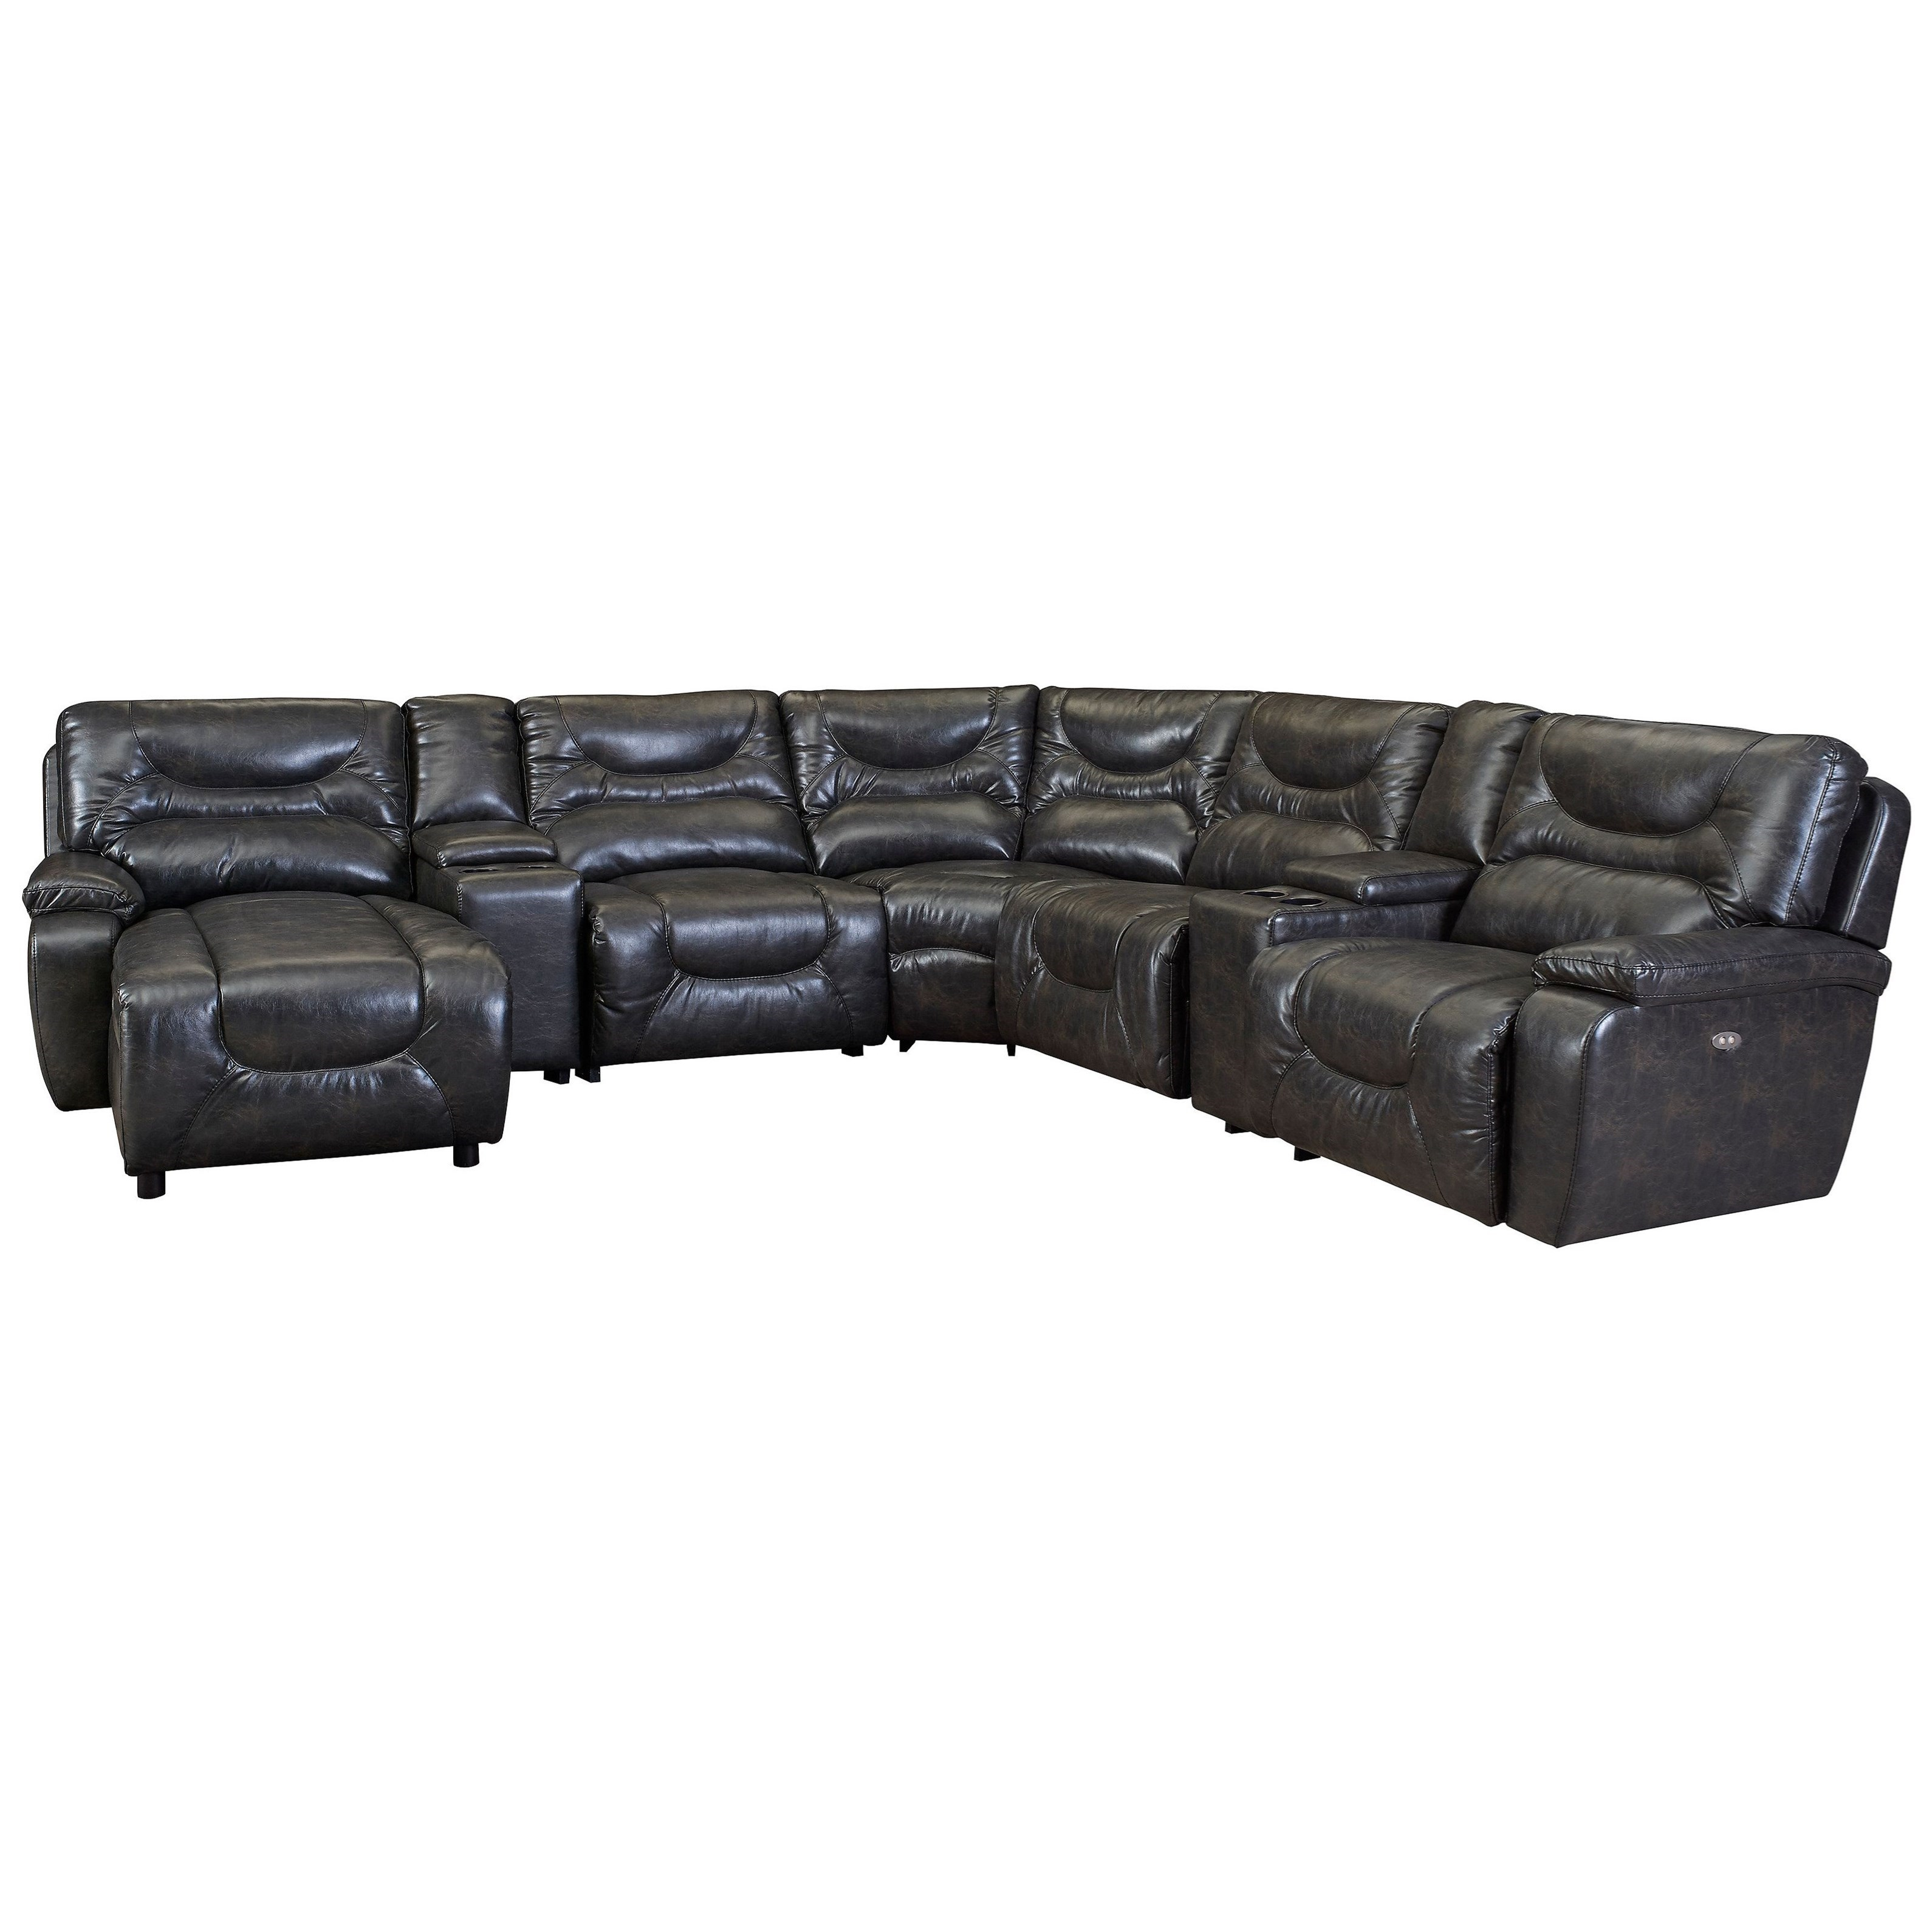 Laf Sofa Sectional Images Latest